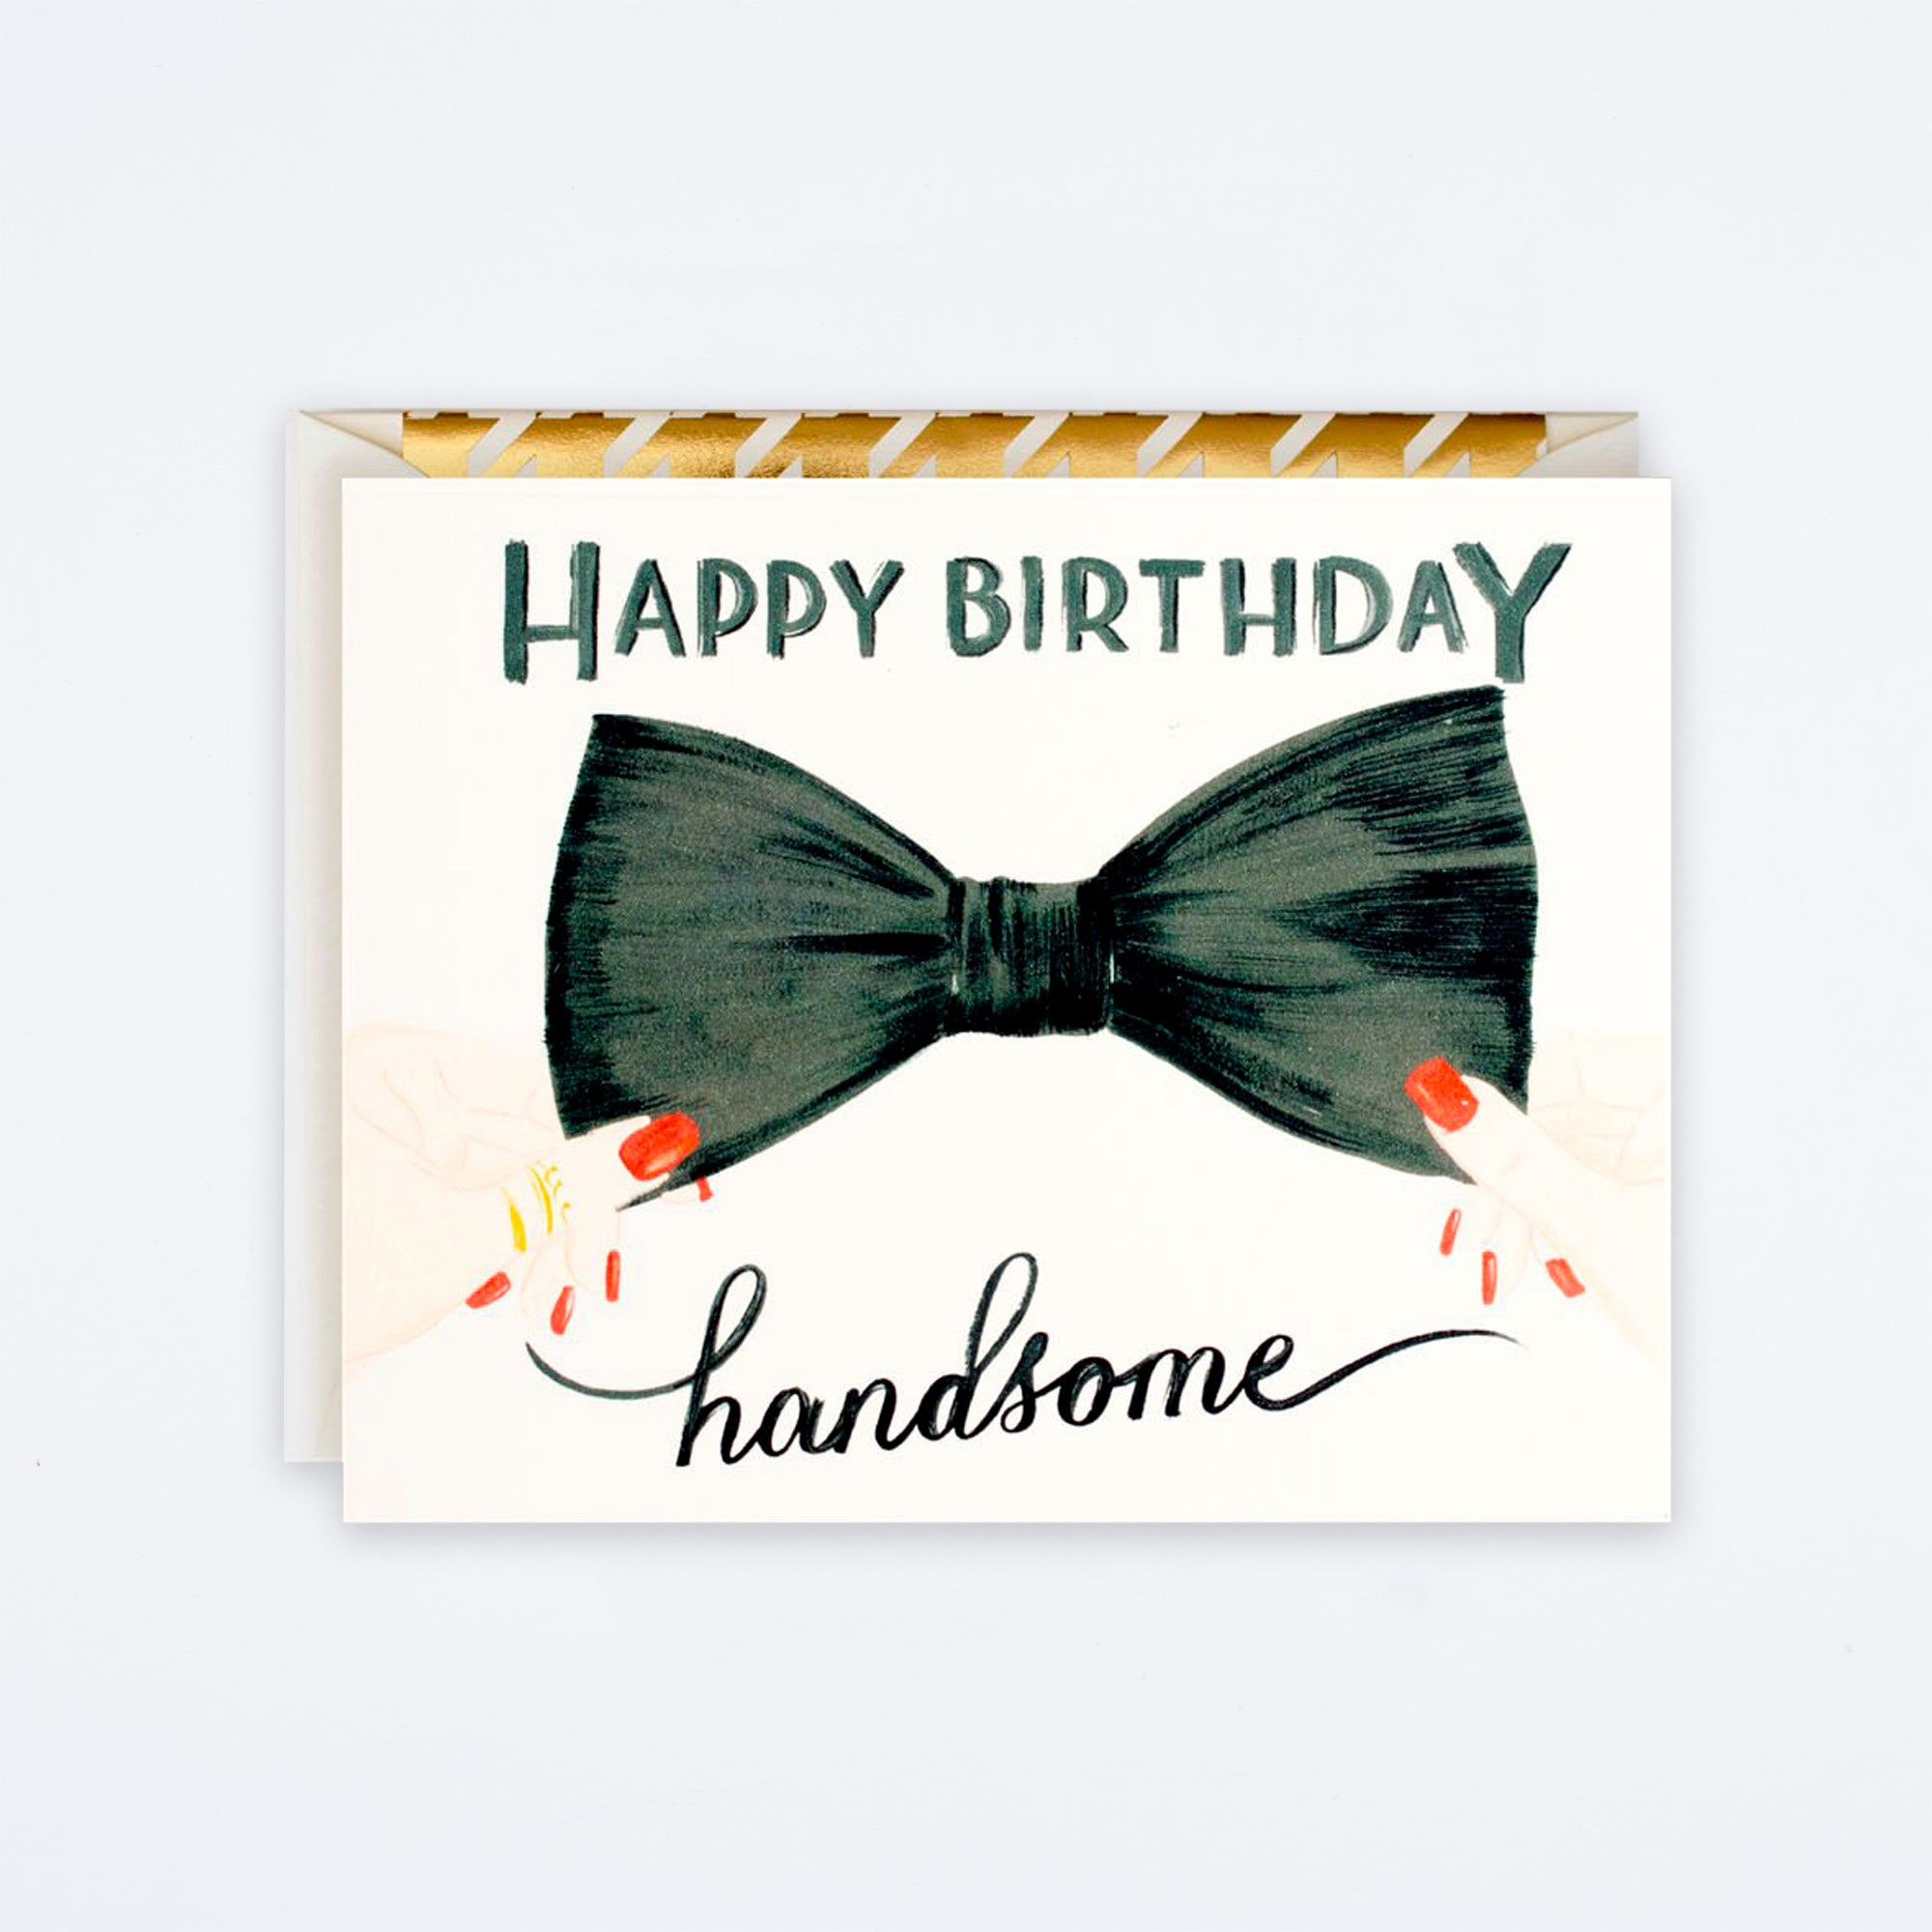 Happy Birthday Handsome Bow Tie Card